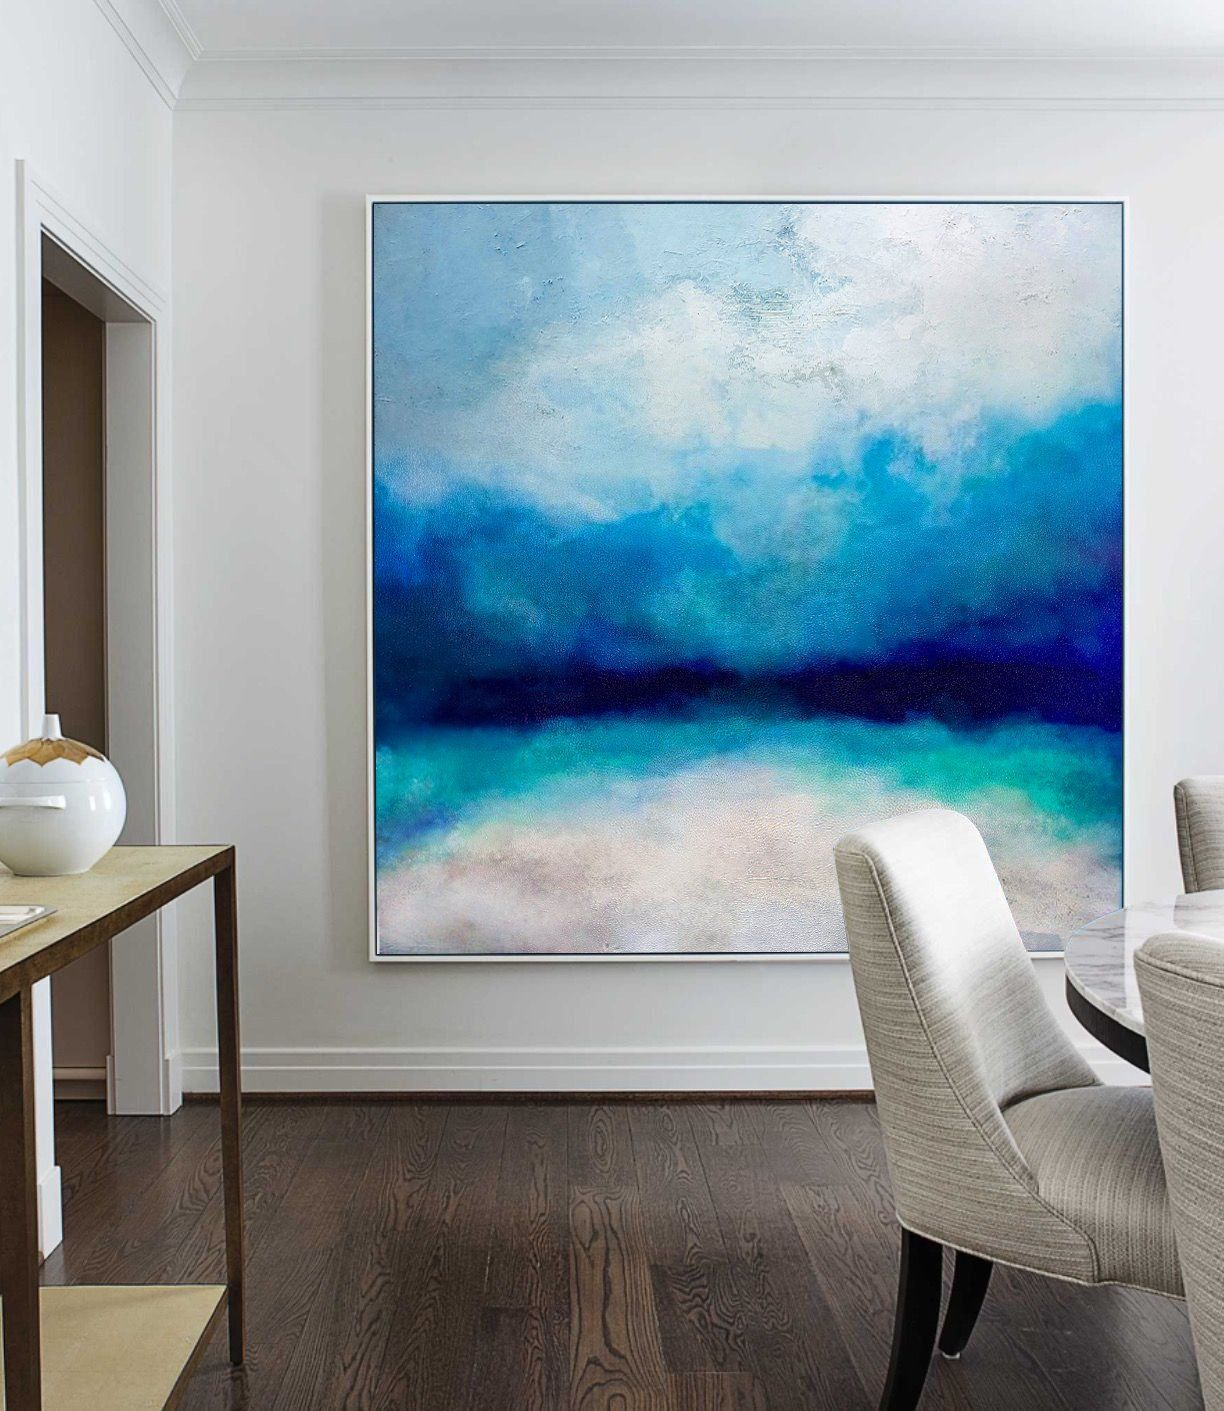 Large Ocean Canvas Oil Painting Original Turquoise Sea And Blue Sky Landscape Painting Sky Landscape Oil Painting Large Wall Sea Painting Ocean Canvas Sky Landscape Painting Blue Abstract Painting